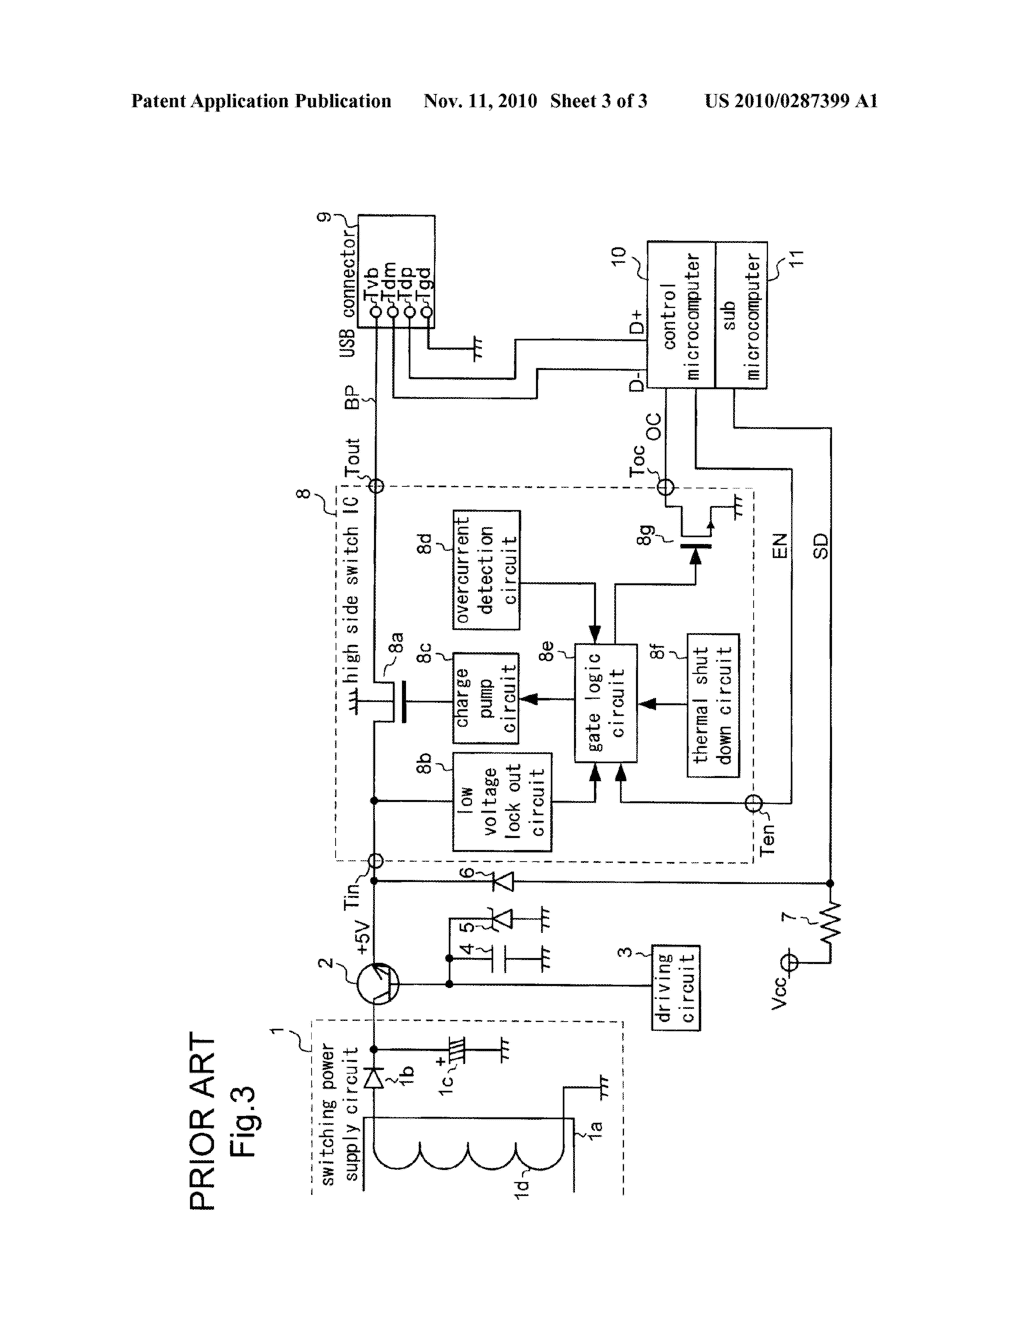 Usb power schematic trusted wiring diagram usb power supply circuit diagram schematic and image 04 usb power supply usb power schematic ccuart Choice Image